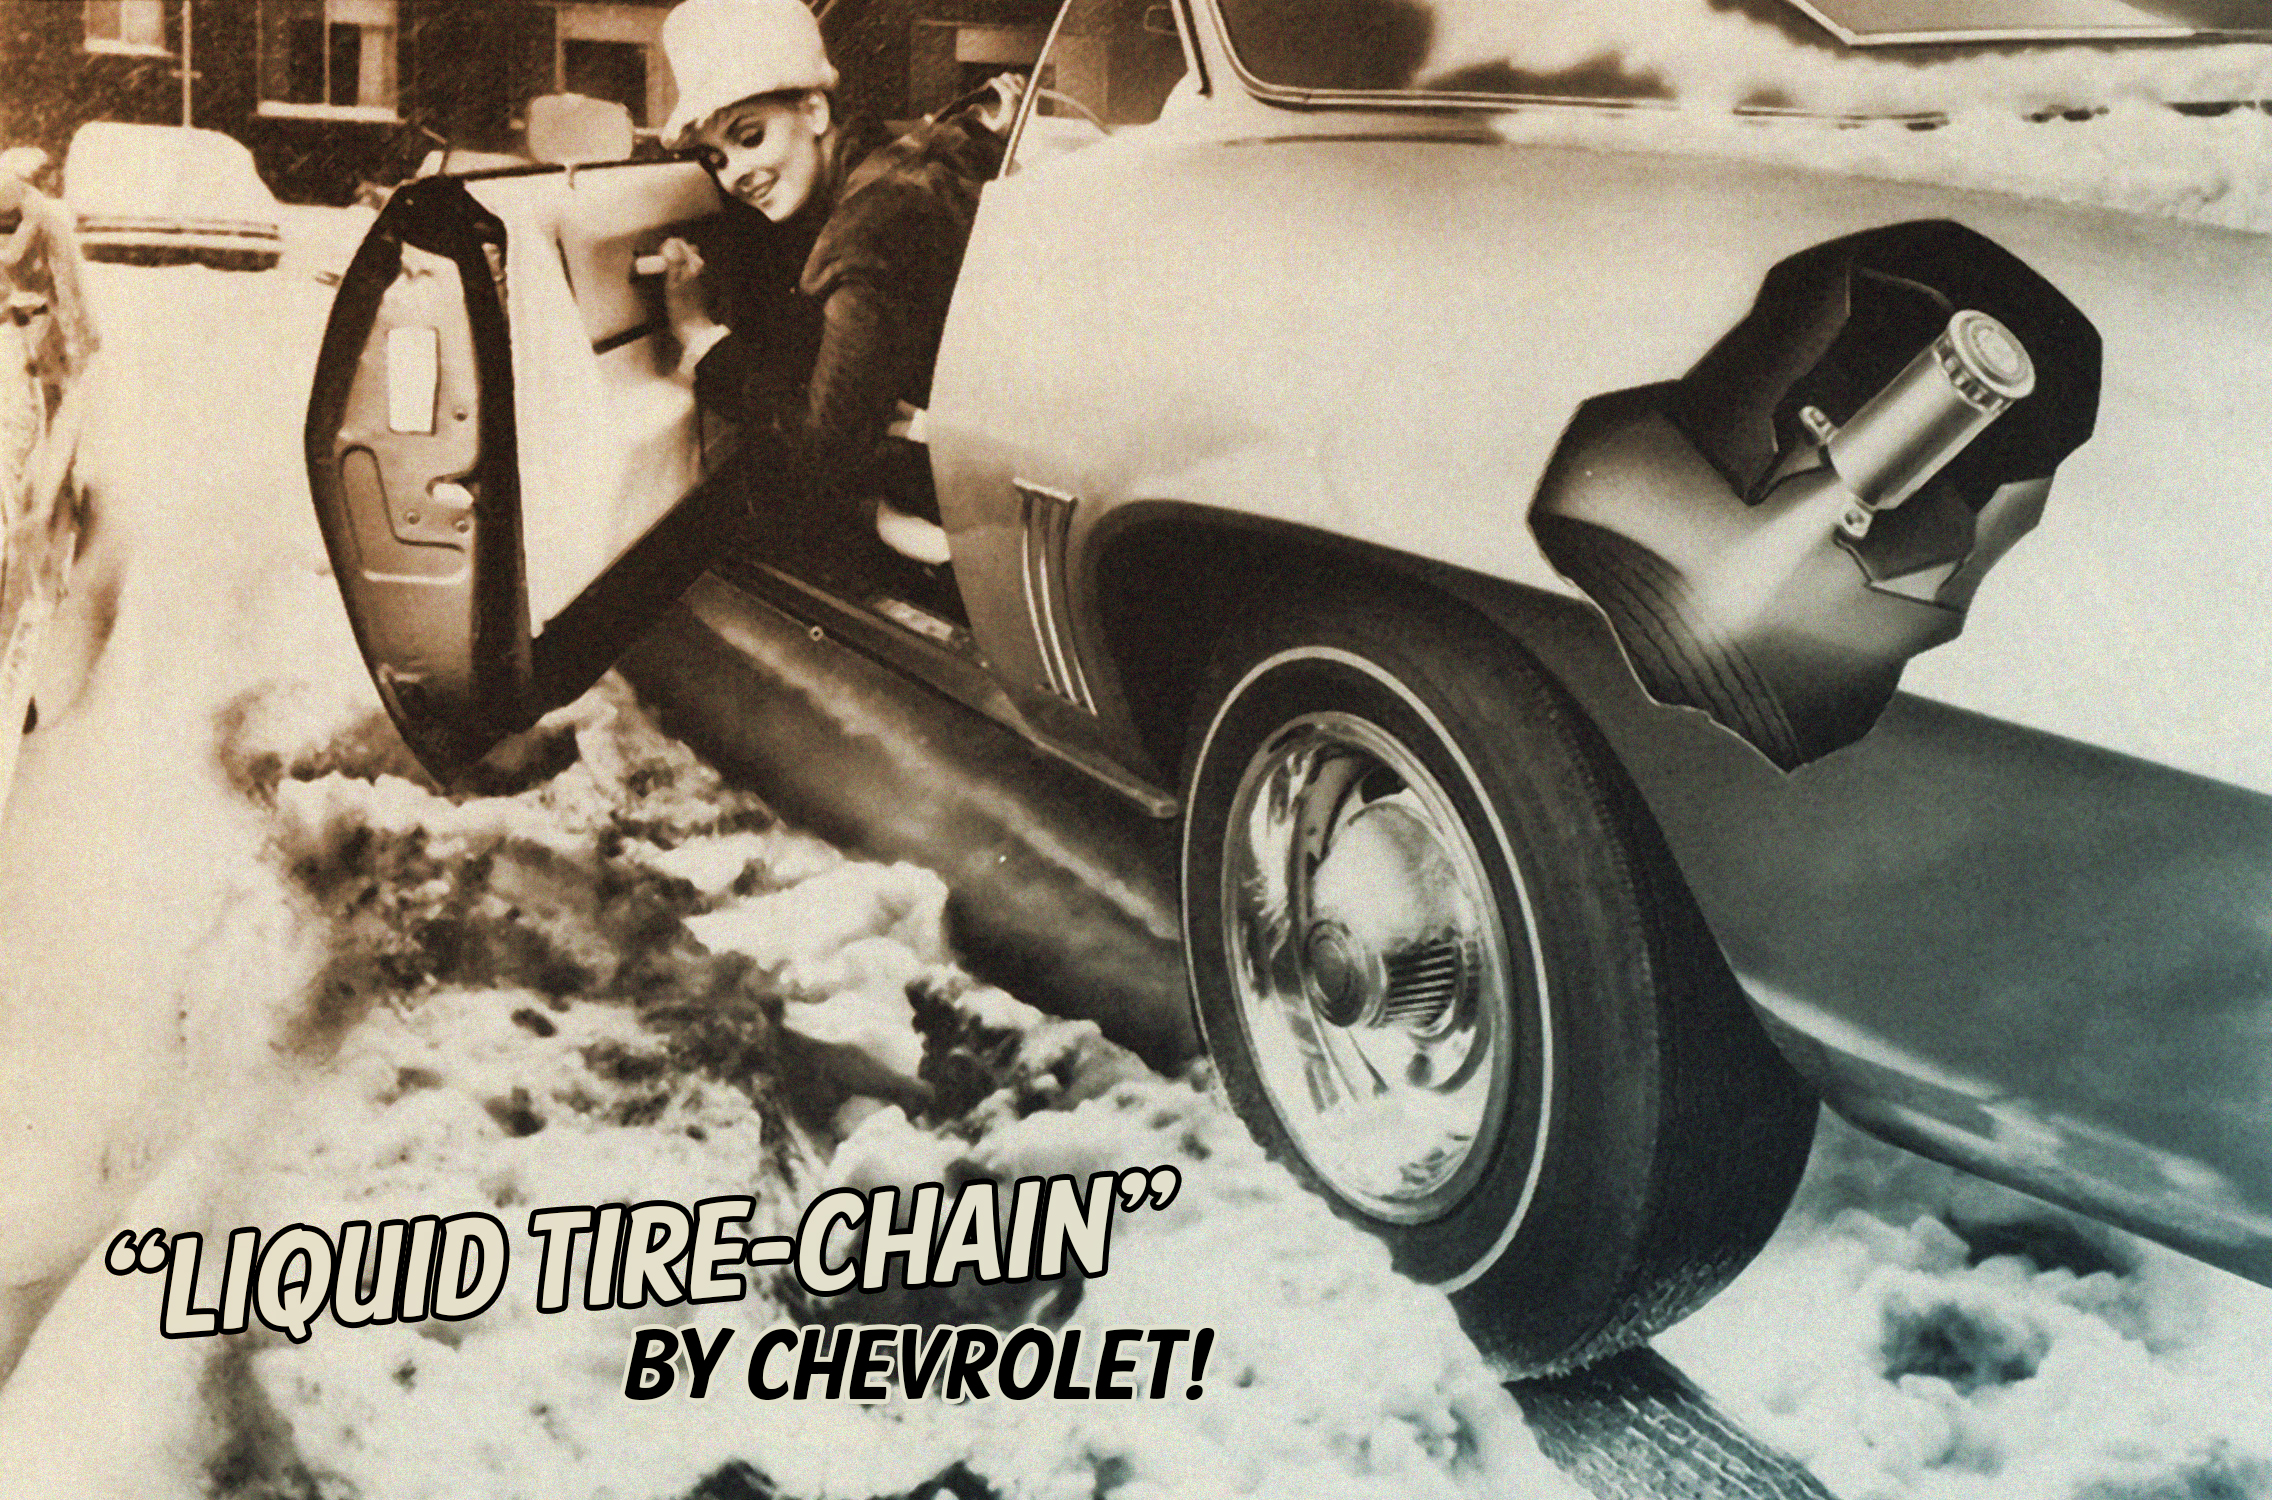 Liquid Tire Chain.jpg